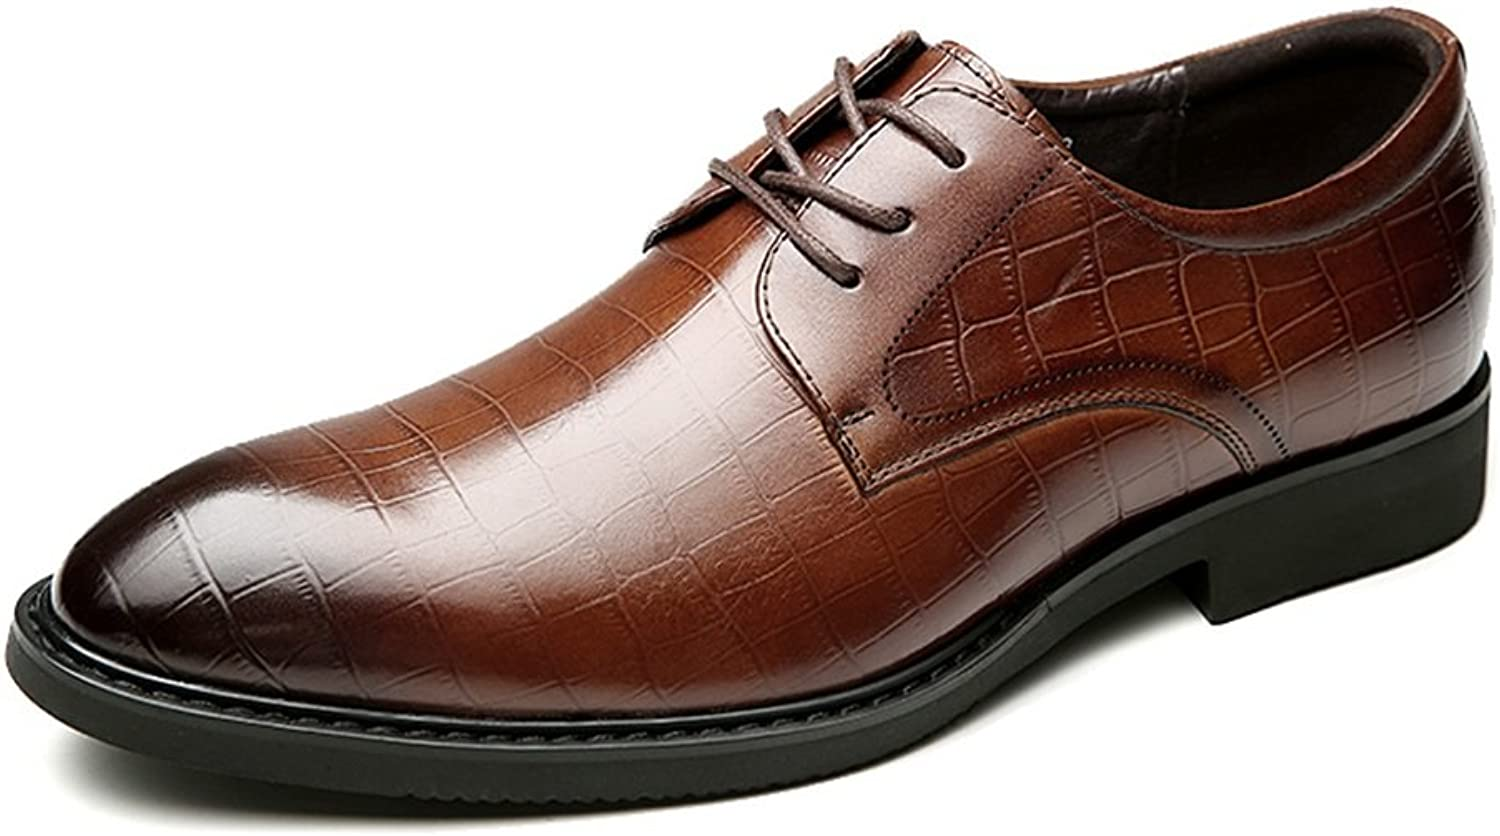 Men's Genuine Leather Formal Modern Classic Handcrafted Crocodile Embossed Calfskin Lace Up Leather Lined Oxford Dress shoes ( color   Brown , Size   9.5 D(M)US )